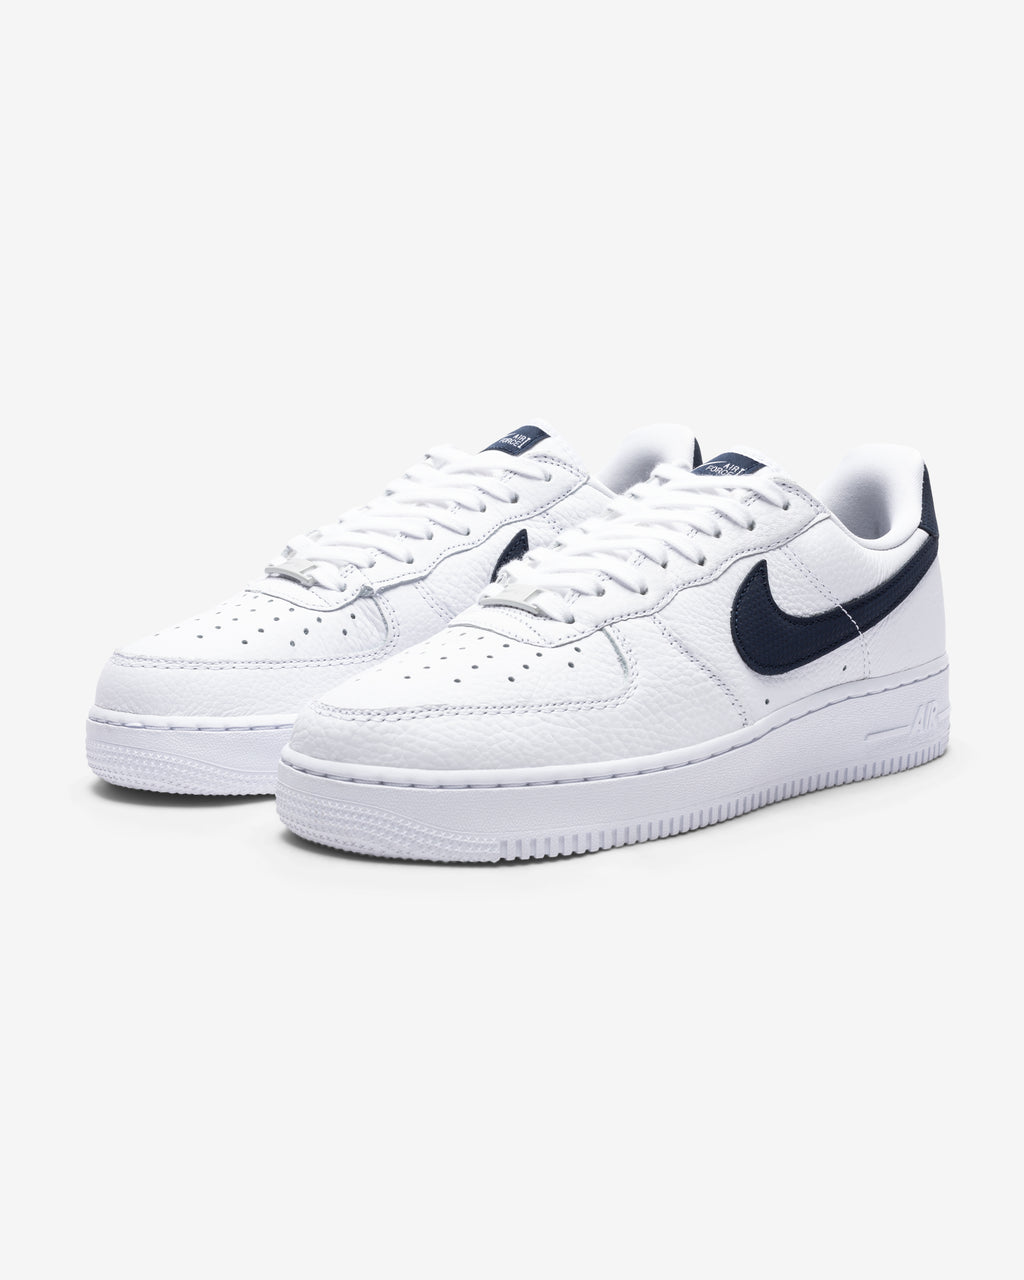 AIR FORCE 1 '07 CRAFT - WHITE/ OBSIDIAN